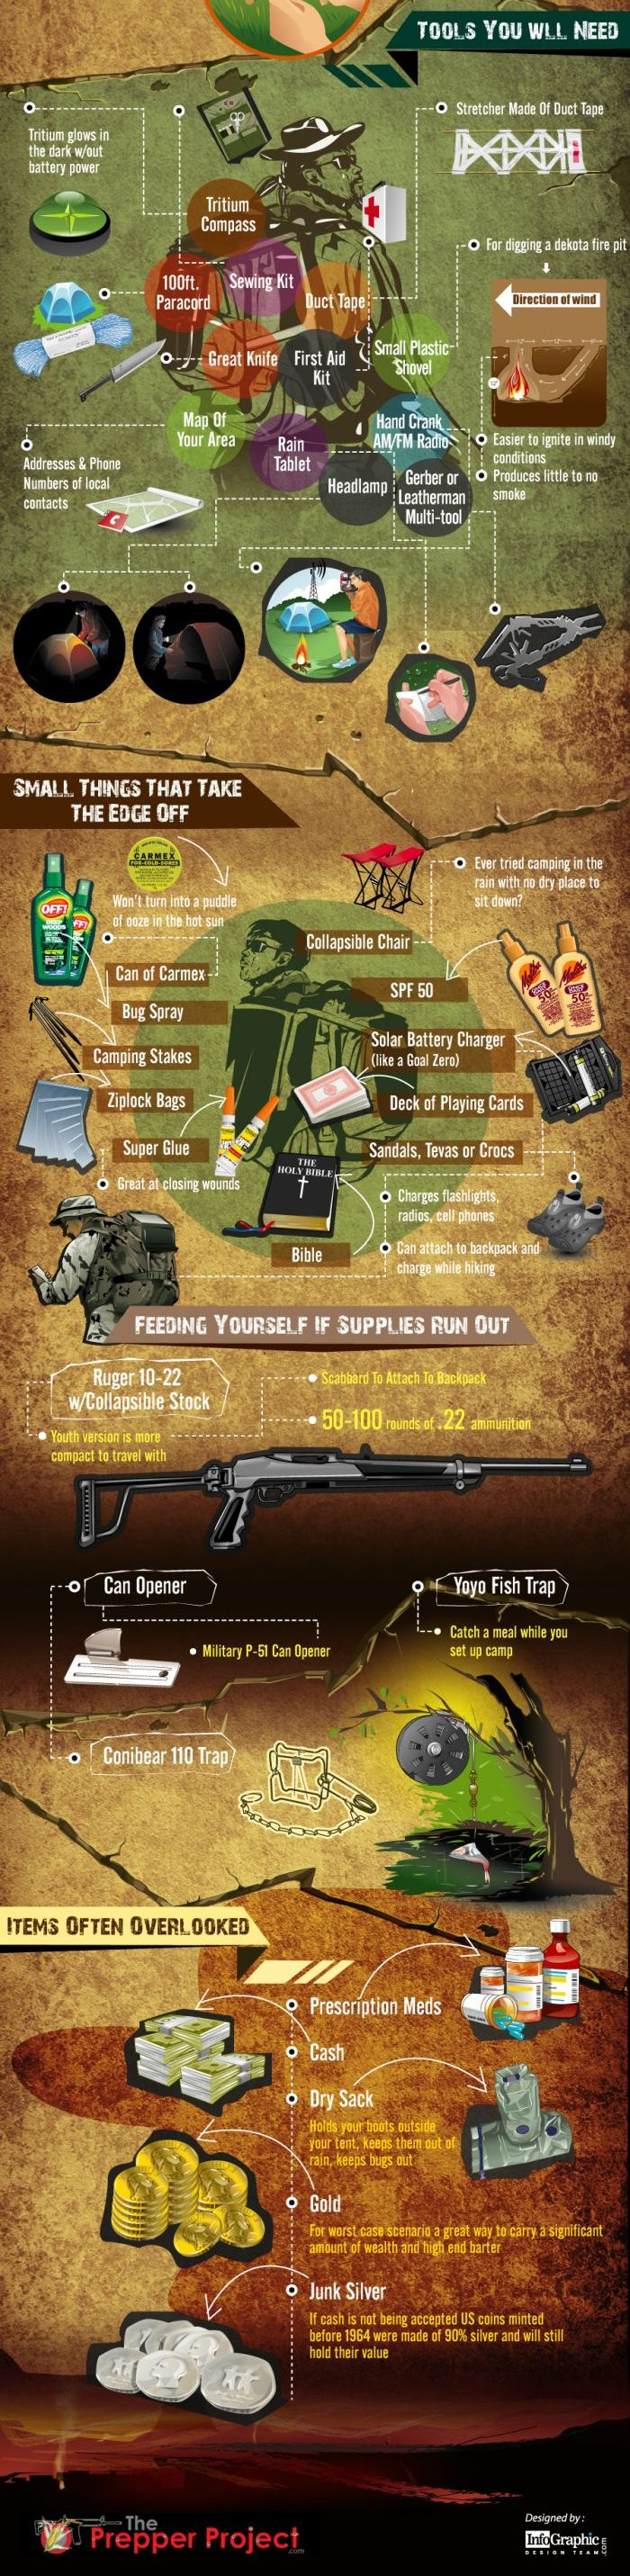 bug-out-bag-big - копия (3).jpg